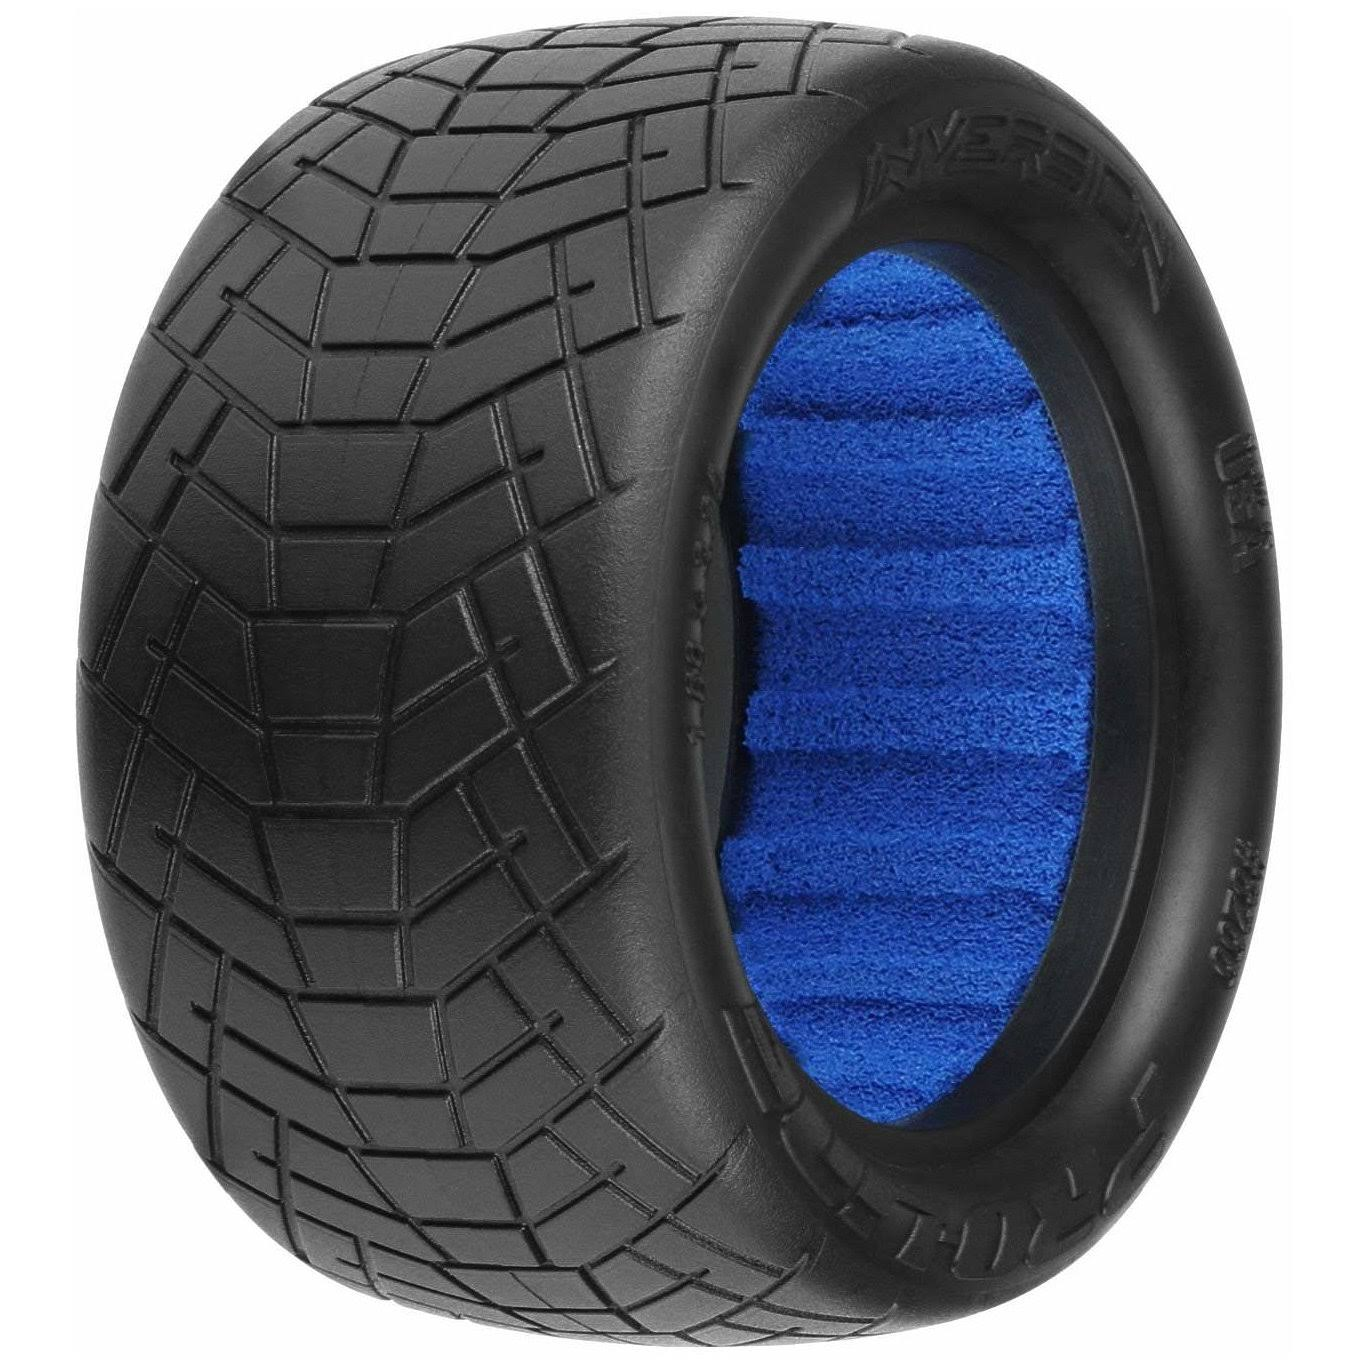 Pro-Line Racing Inversion 2.2 M4 Indoor Buggy Rear Tire